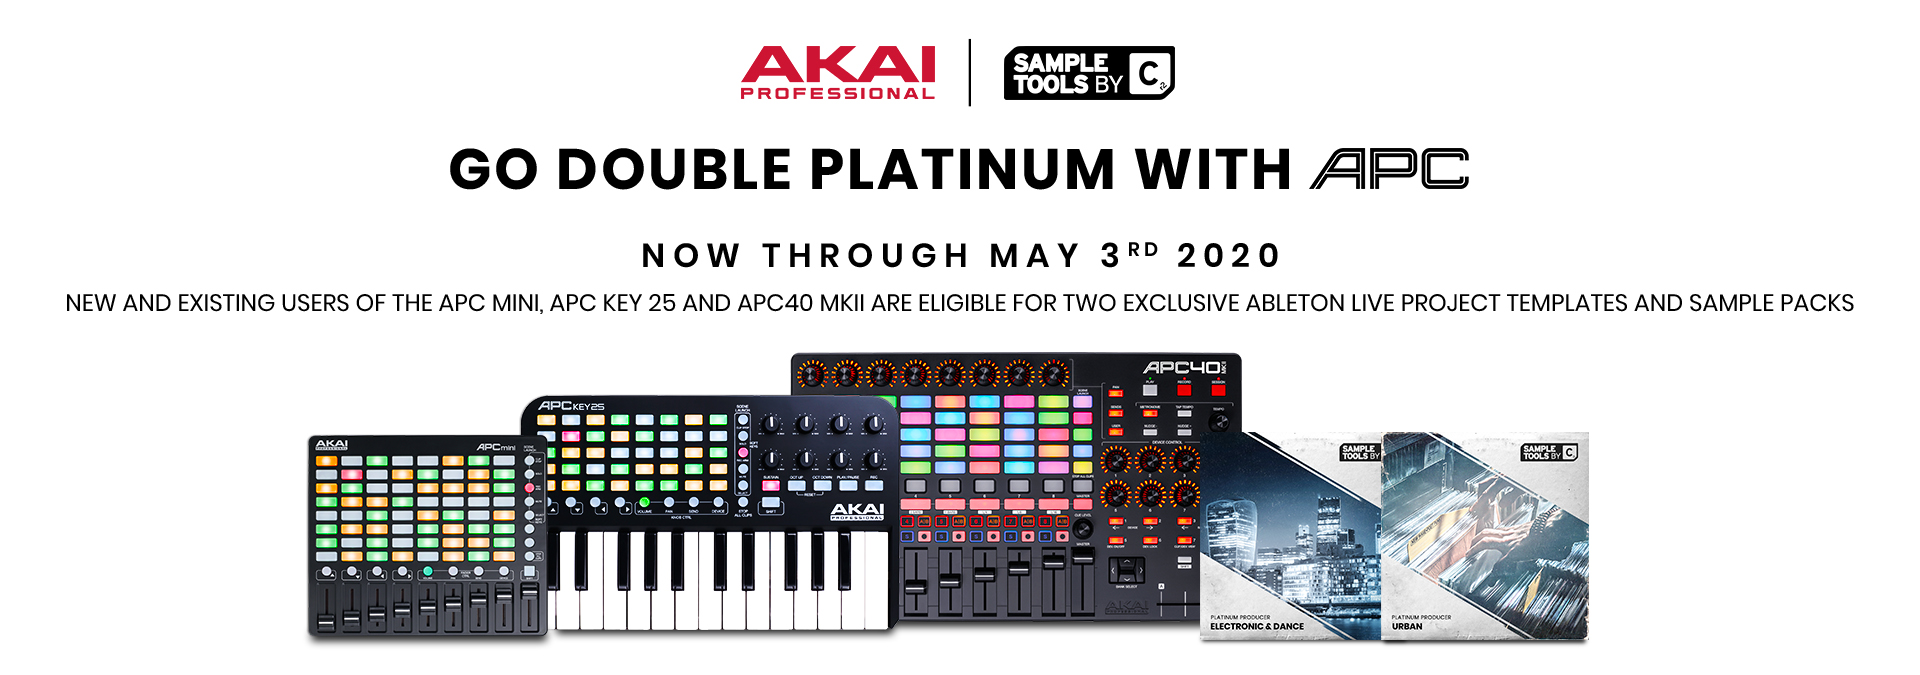 Go Double Platinum with APC